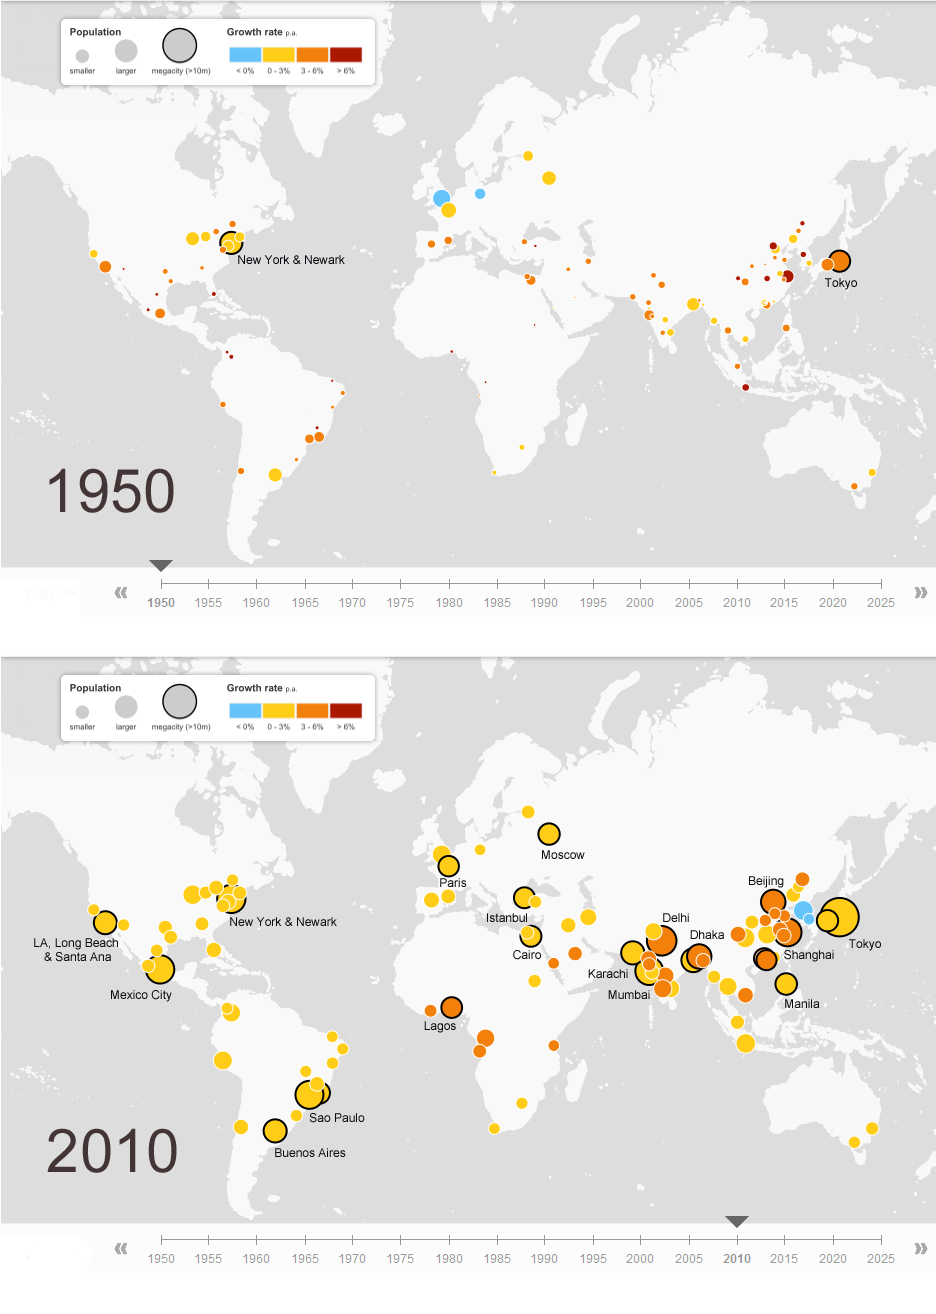 megacities | IndexMundi Blog